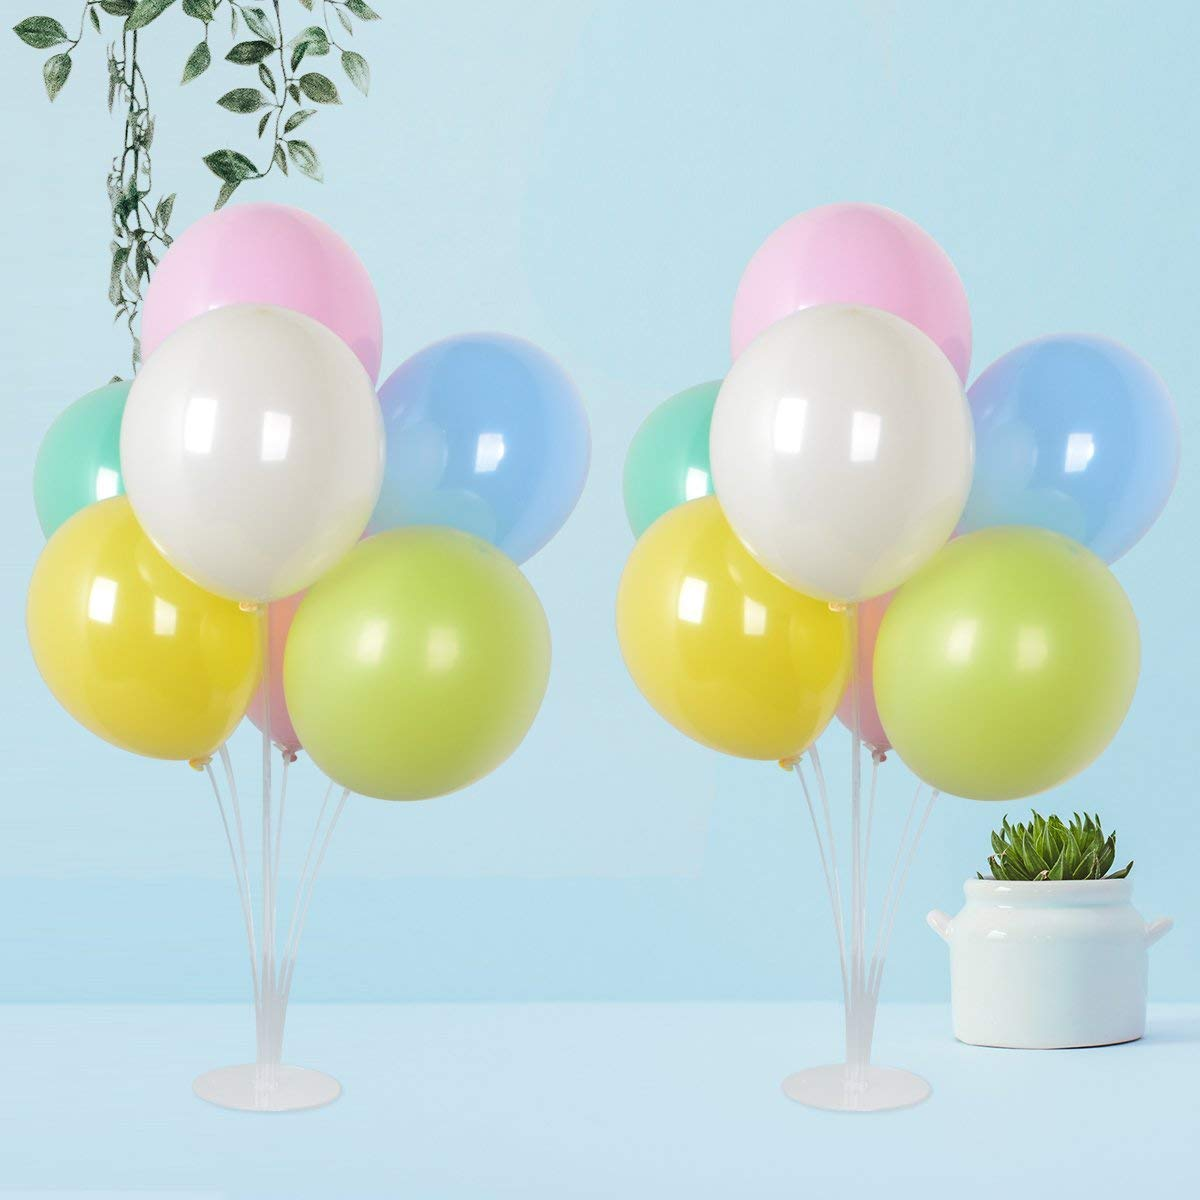 2 set 12 inch Latex Balloons Pastel Assorted Color Party Balloons with Column Stand Kit Base for Baby Shower,Party Weeding Decoration